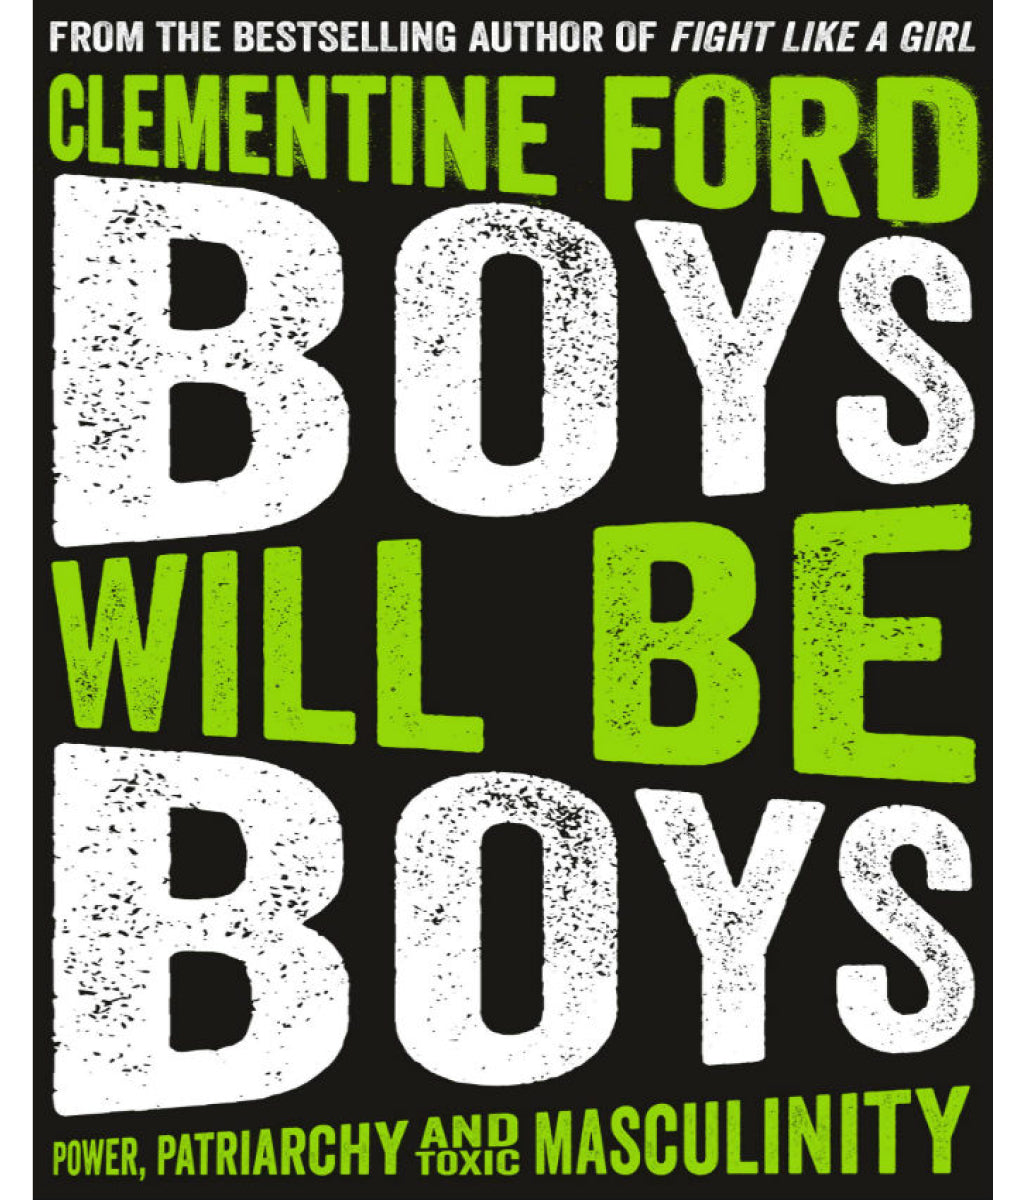 Boys Will Be Boys: Power, Patriarchy and Toxic Masculinity Clementine Ford